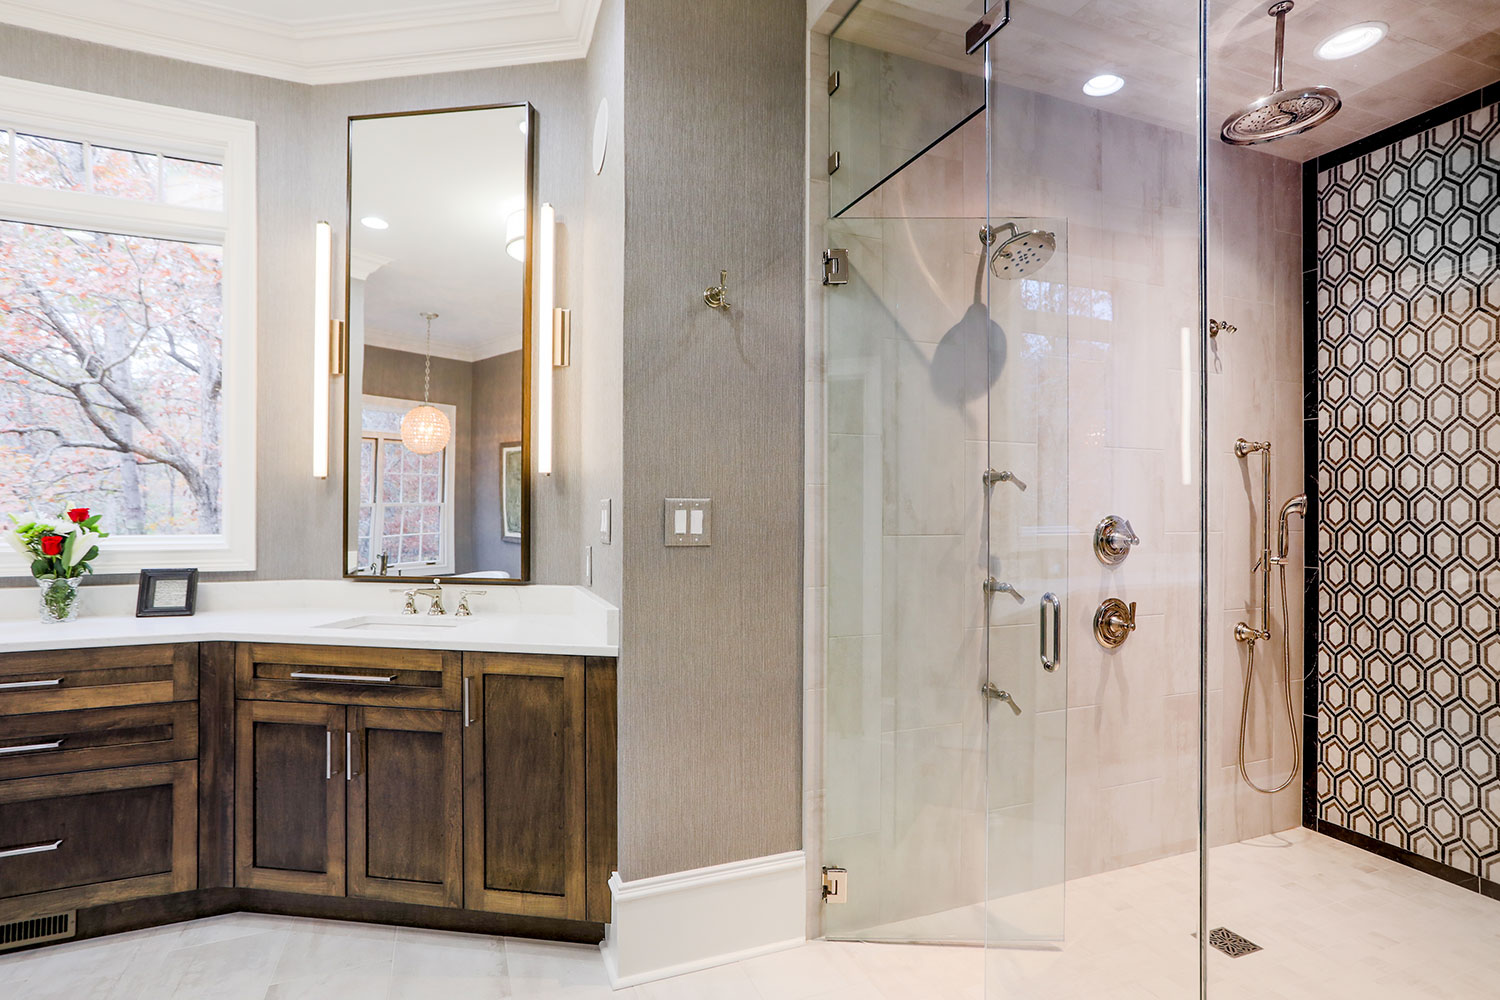 Bathrooms_5: Hodge Design and Remodeling